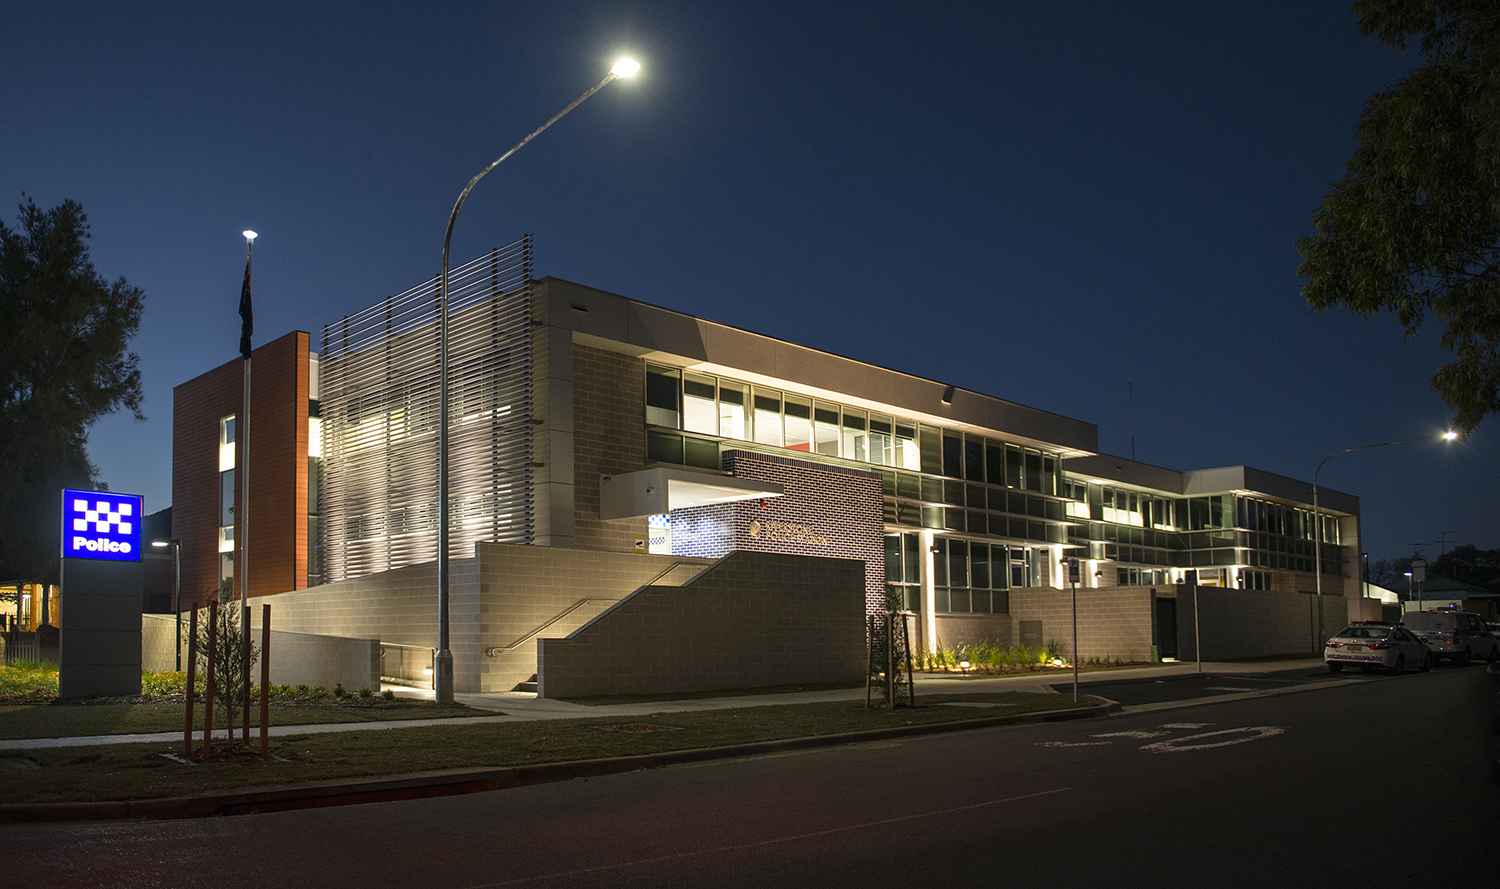 Riverstone Police Station Exterior Facade Night Time – Gardner Wetherill GW 1